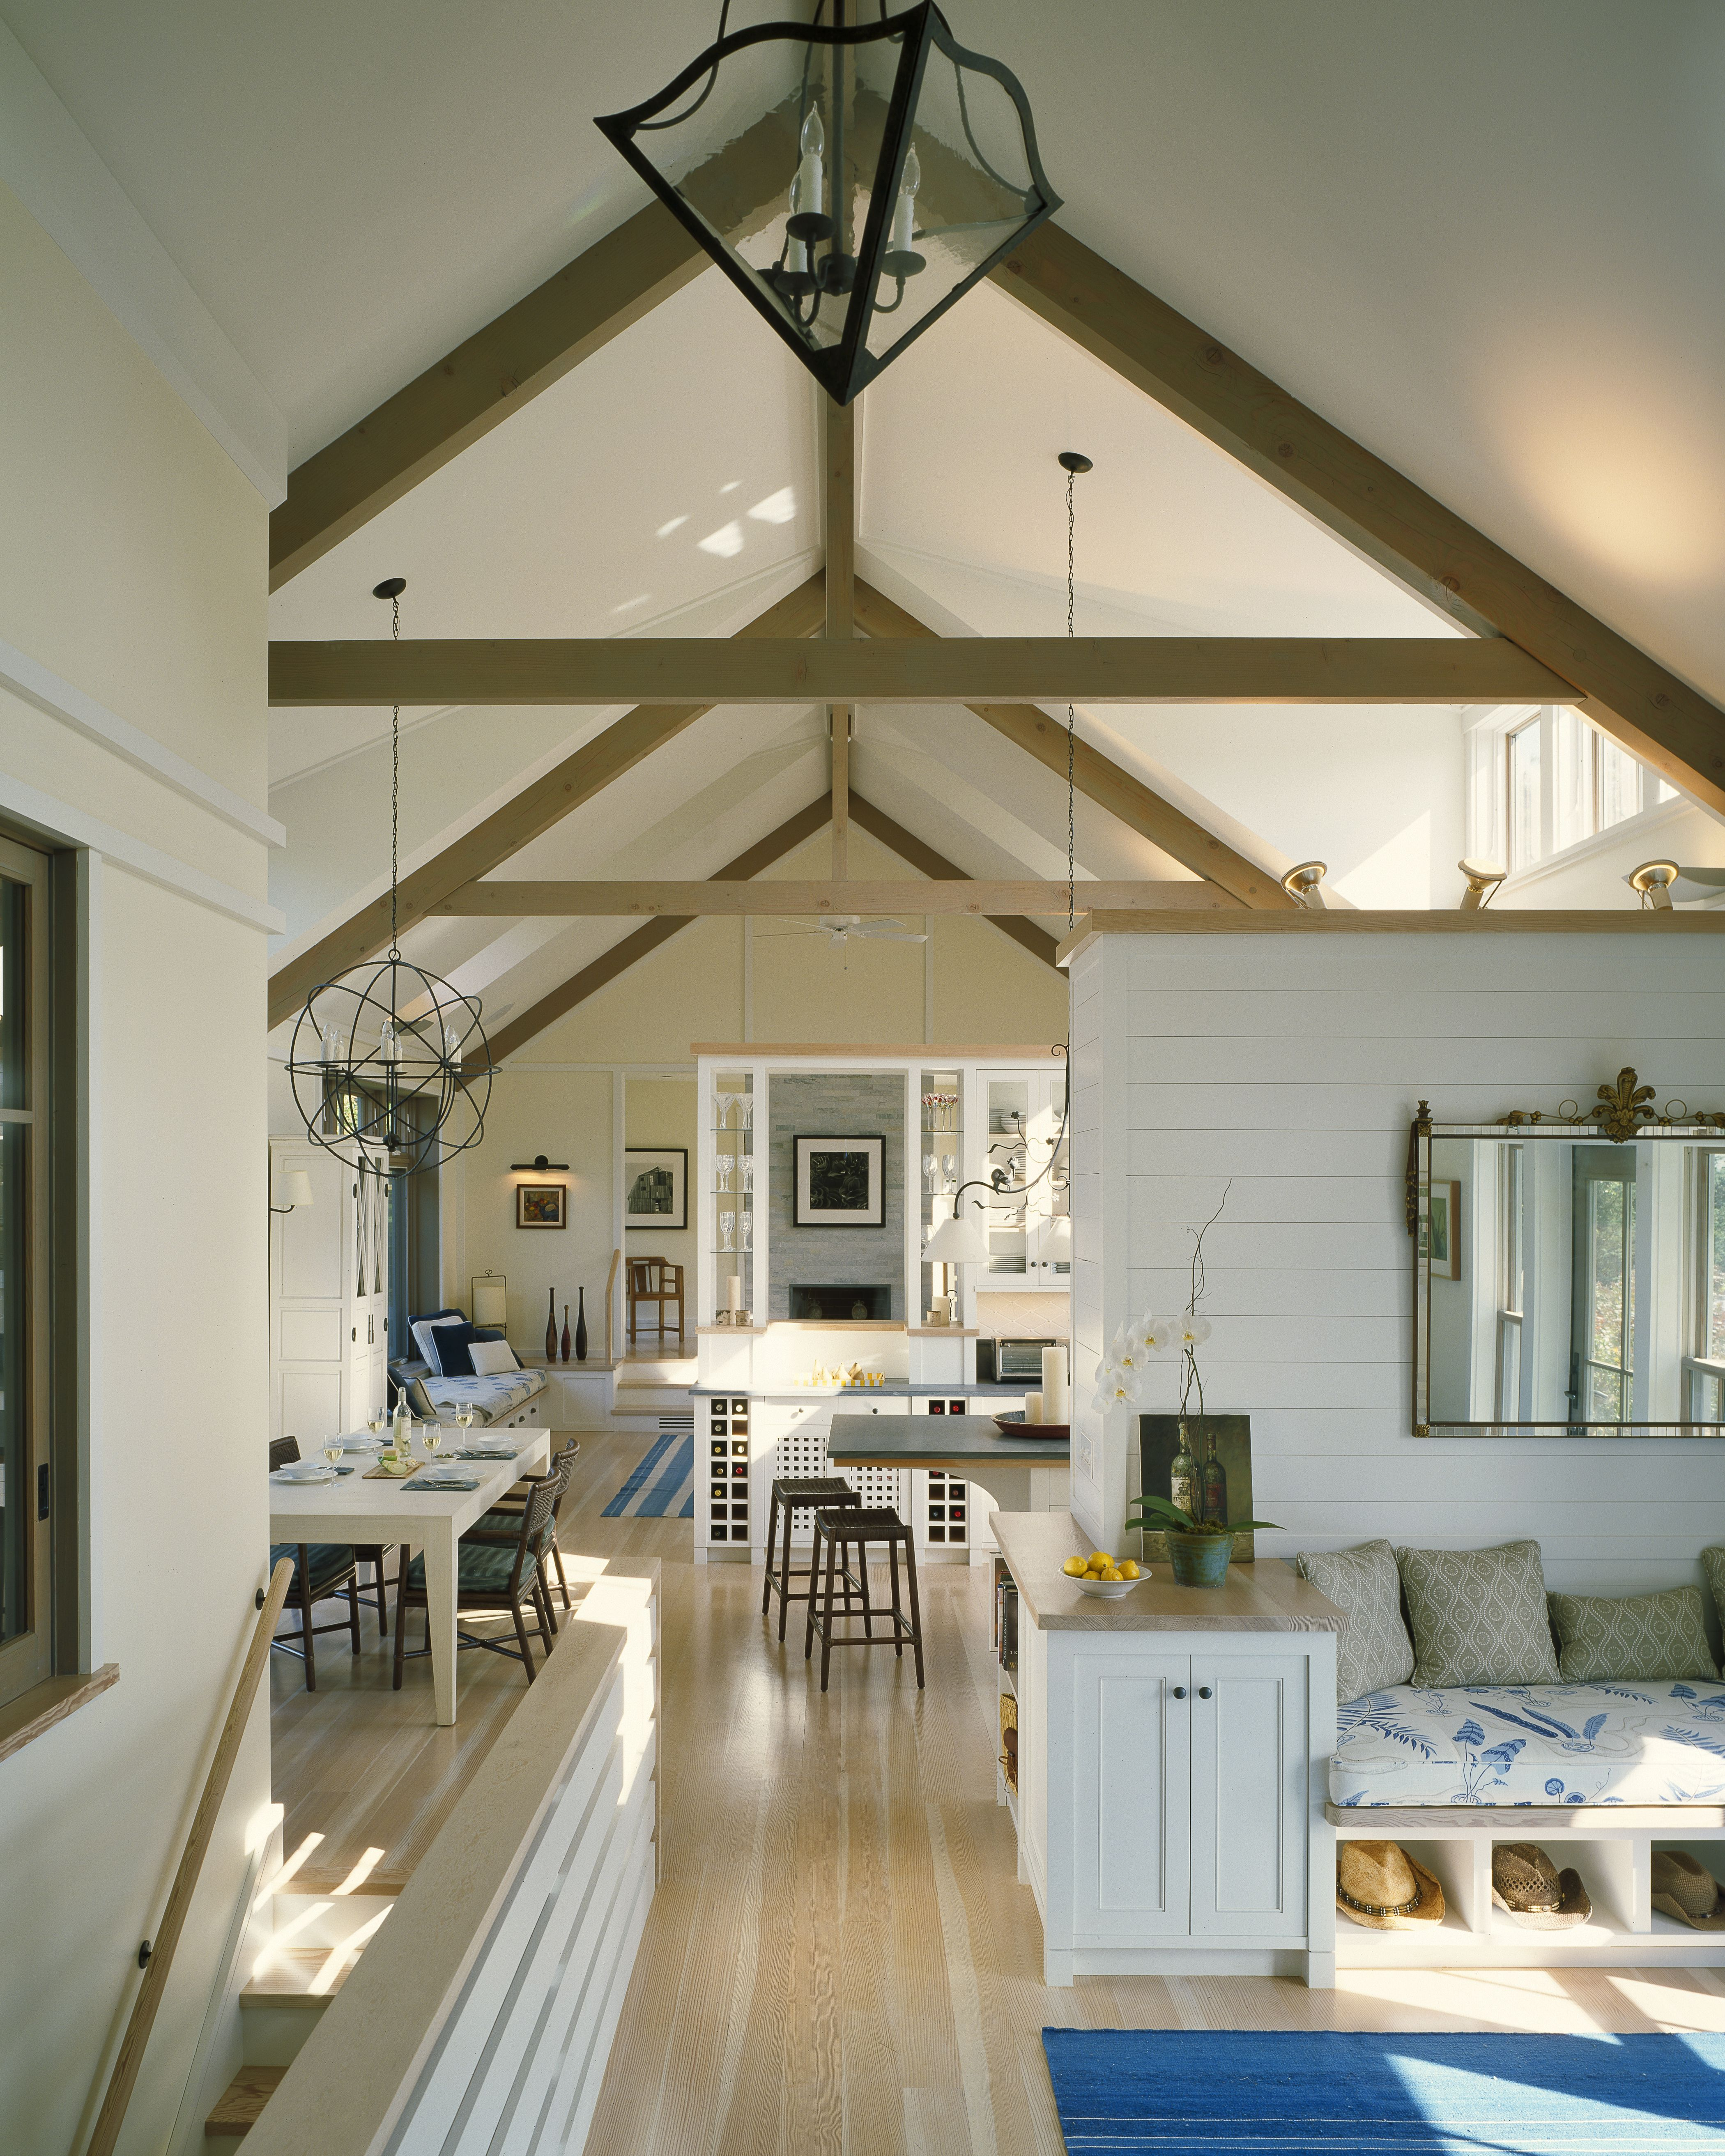 Room In Attic Truss Design: High Ceiling, Apparent Wood Structure, Interesting Pendant